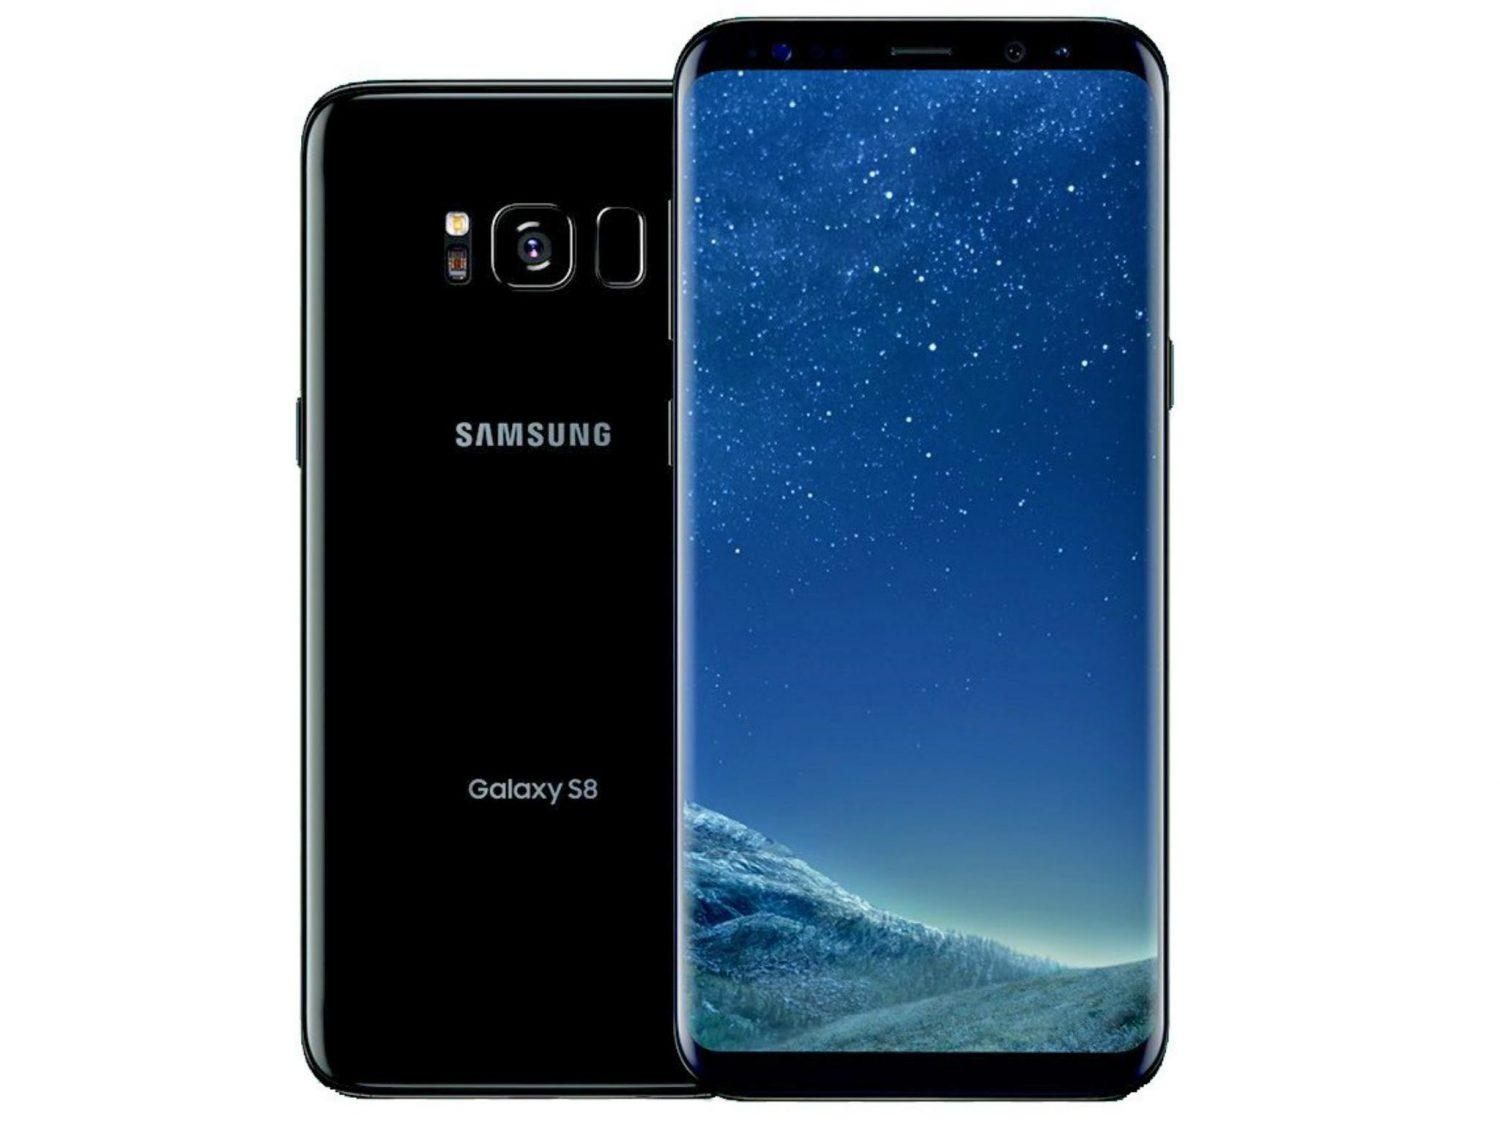 samsung galaxy s8 g950fd 64gb dual sim 4g lte. Black Bedroom Furniture Sets. Home Design Ideas